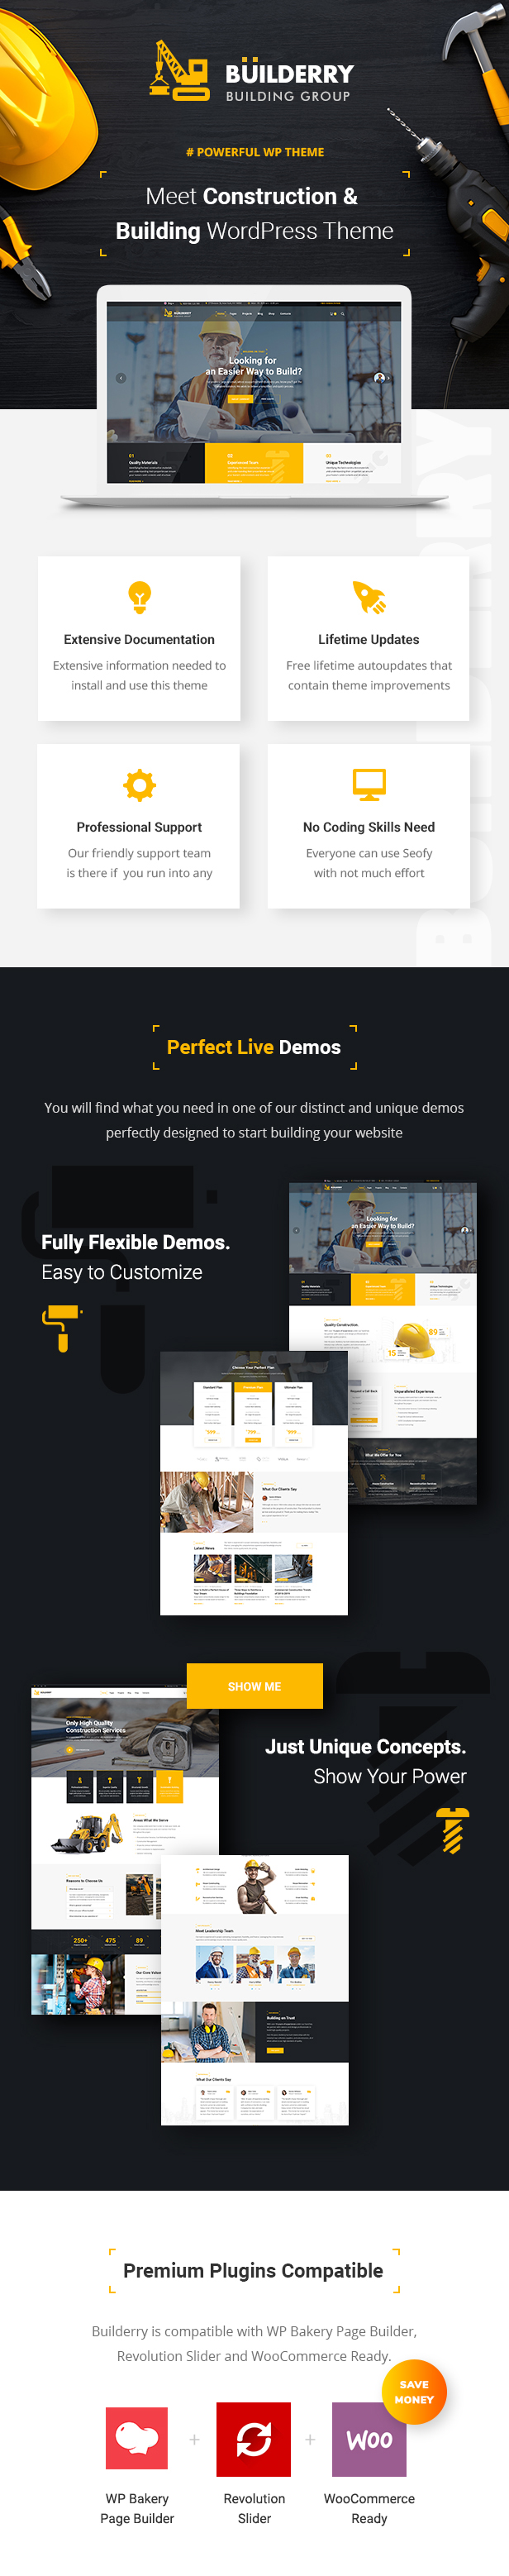 Builderry - Construction and Building WordPress Theme - 1